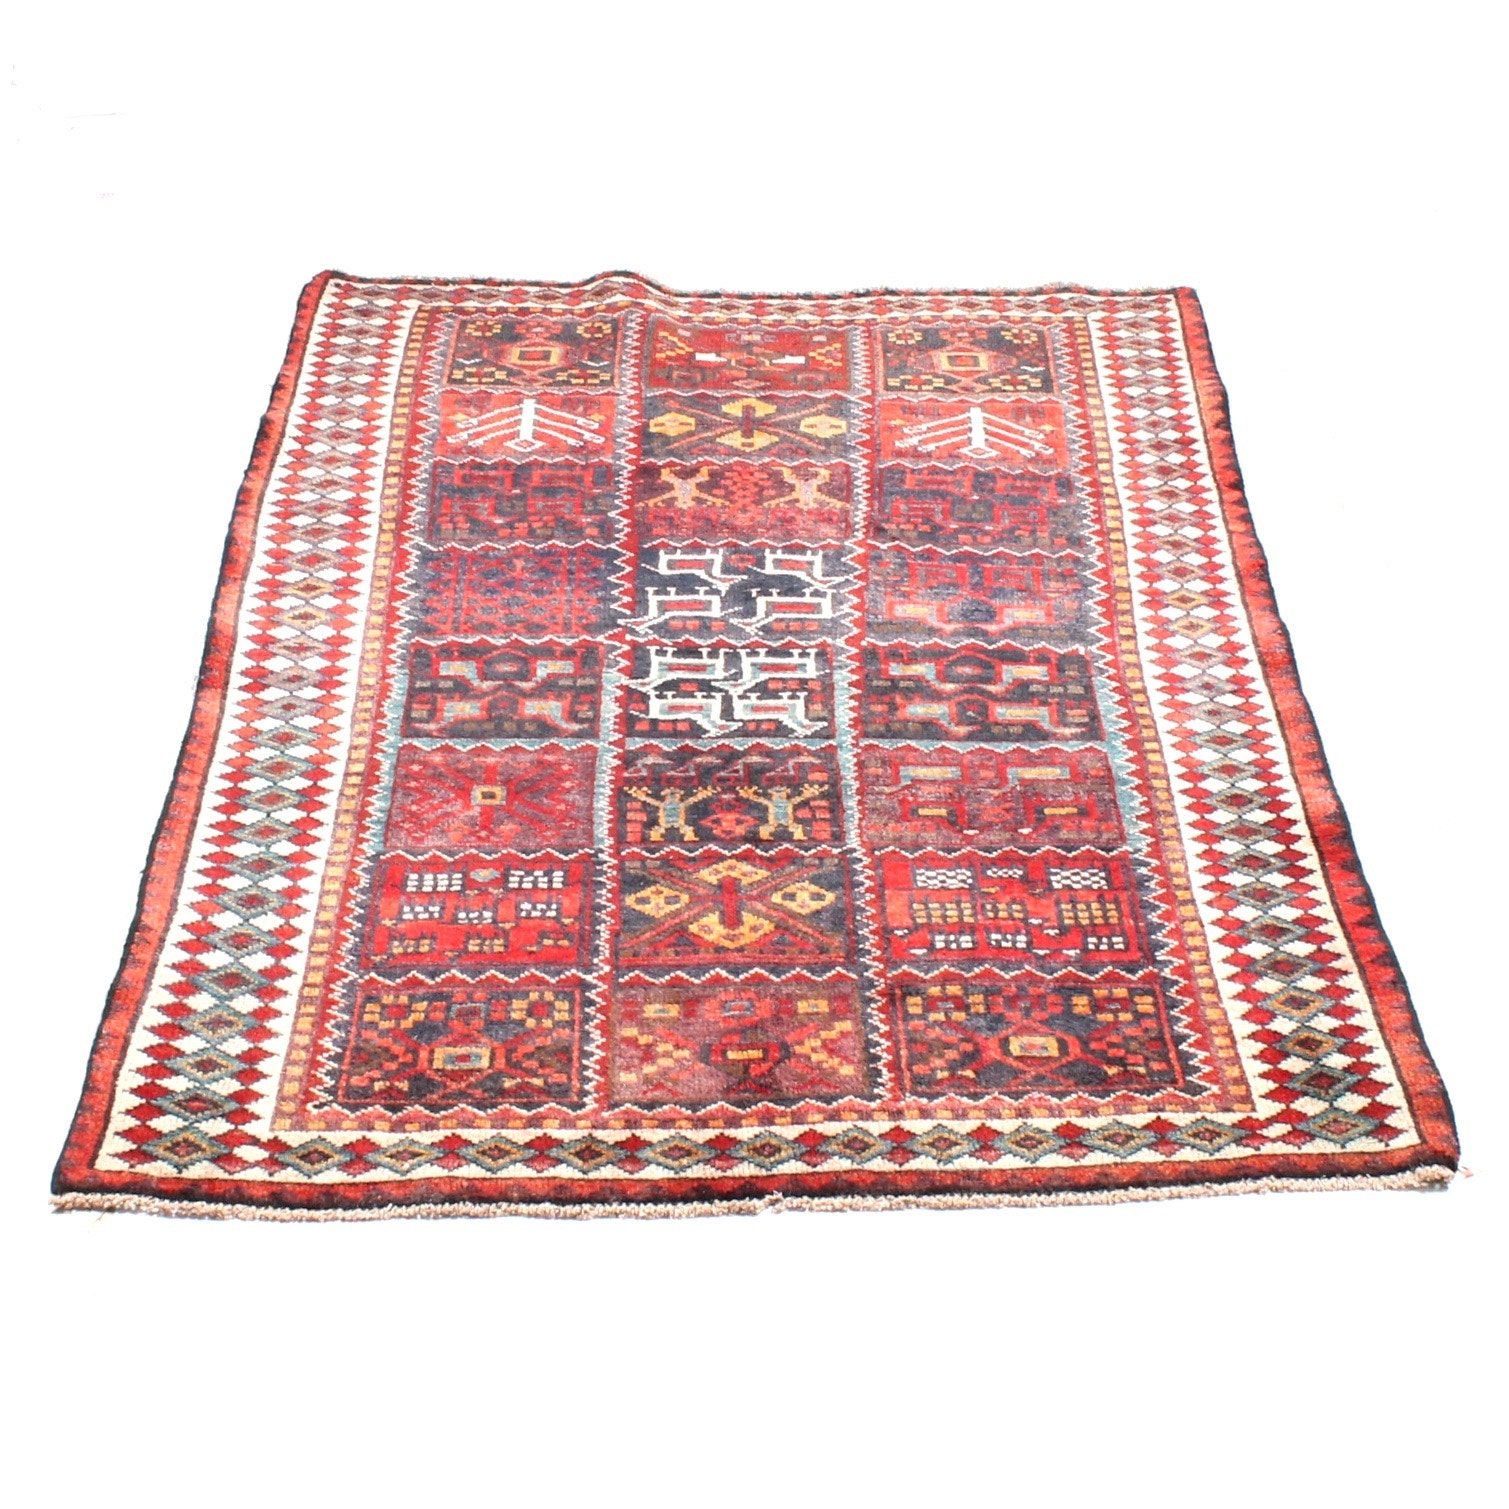 5' x 6' Vintage Hand-Knotted Persian Tribal Bakhtiari Rug